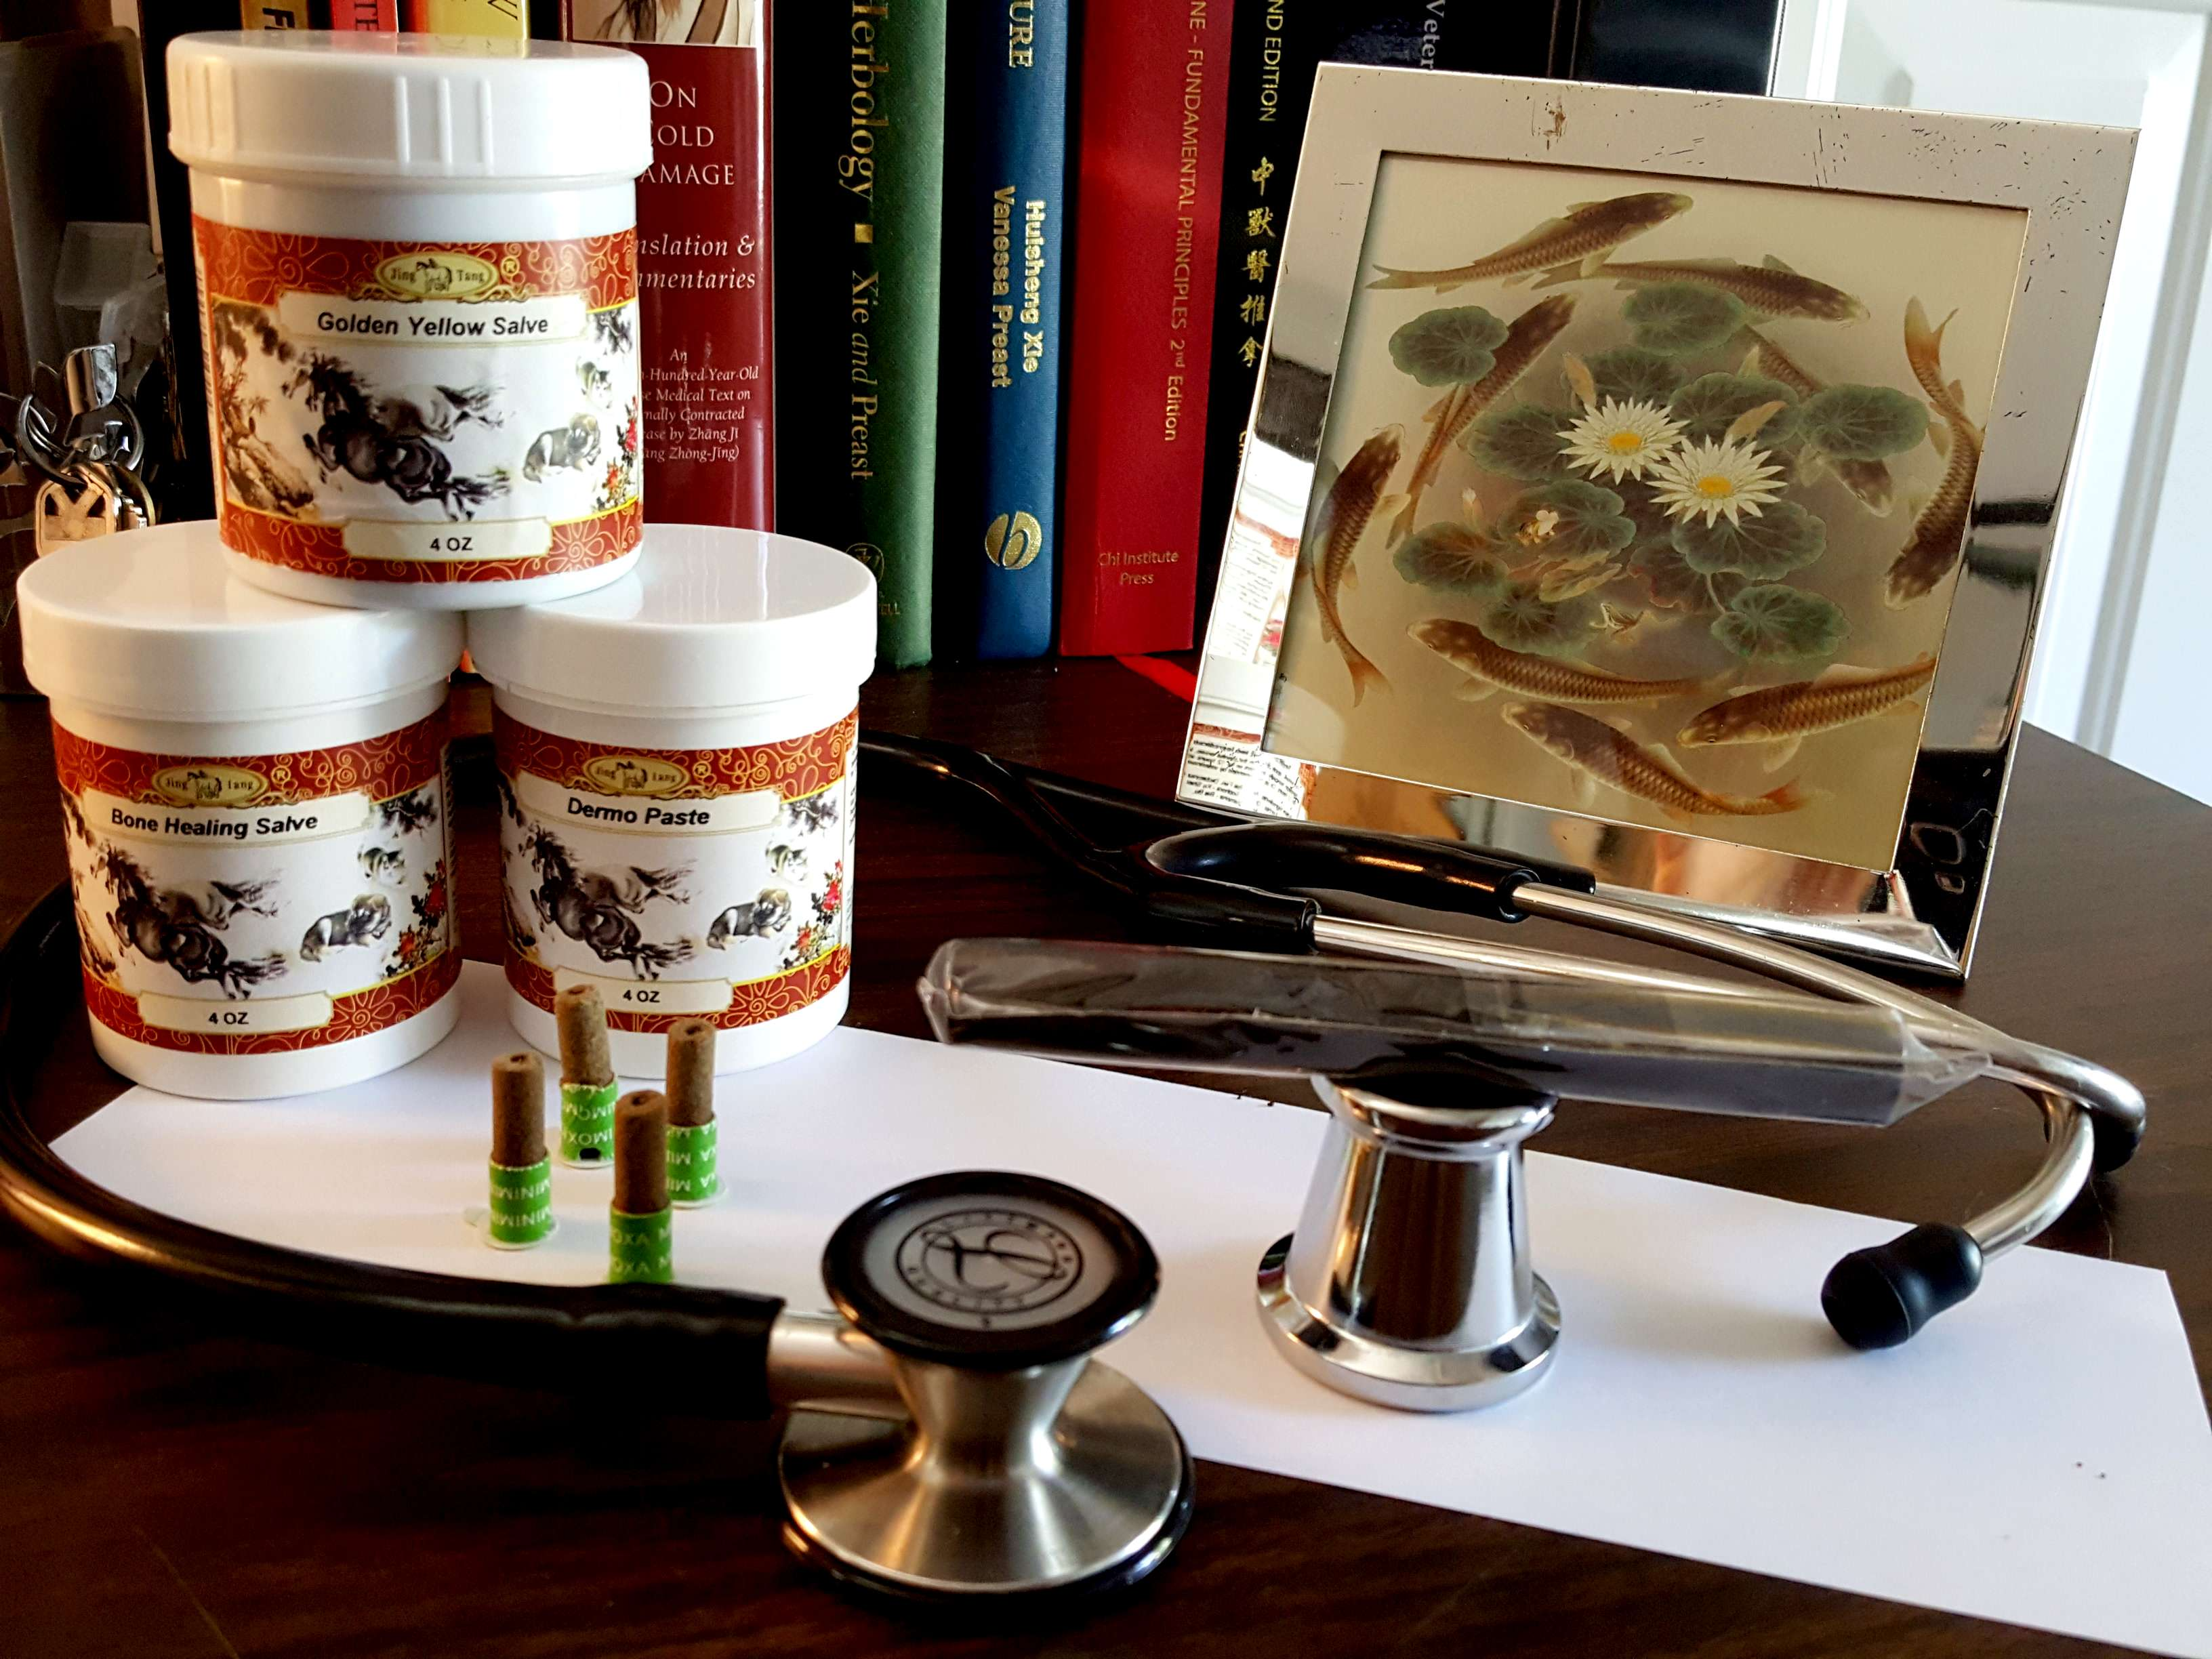 Chinese dog herbal therapy - Tubs Of Herbal Salves And Sticks Of Artemesia Root Moxa Await A Patient